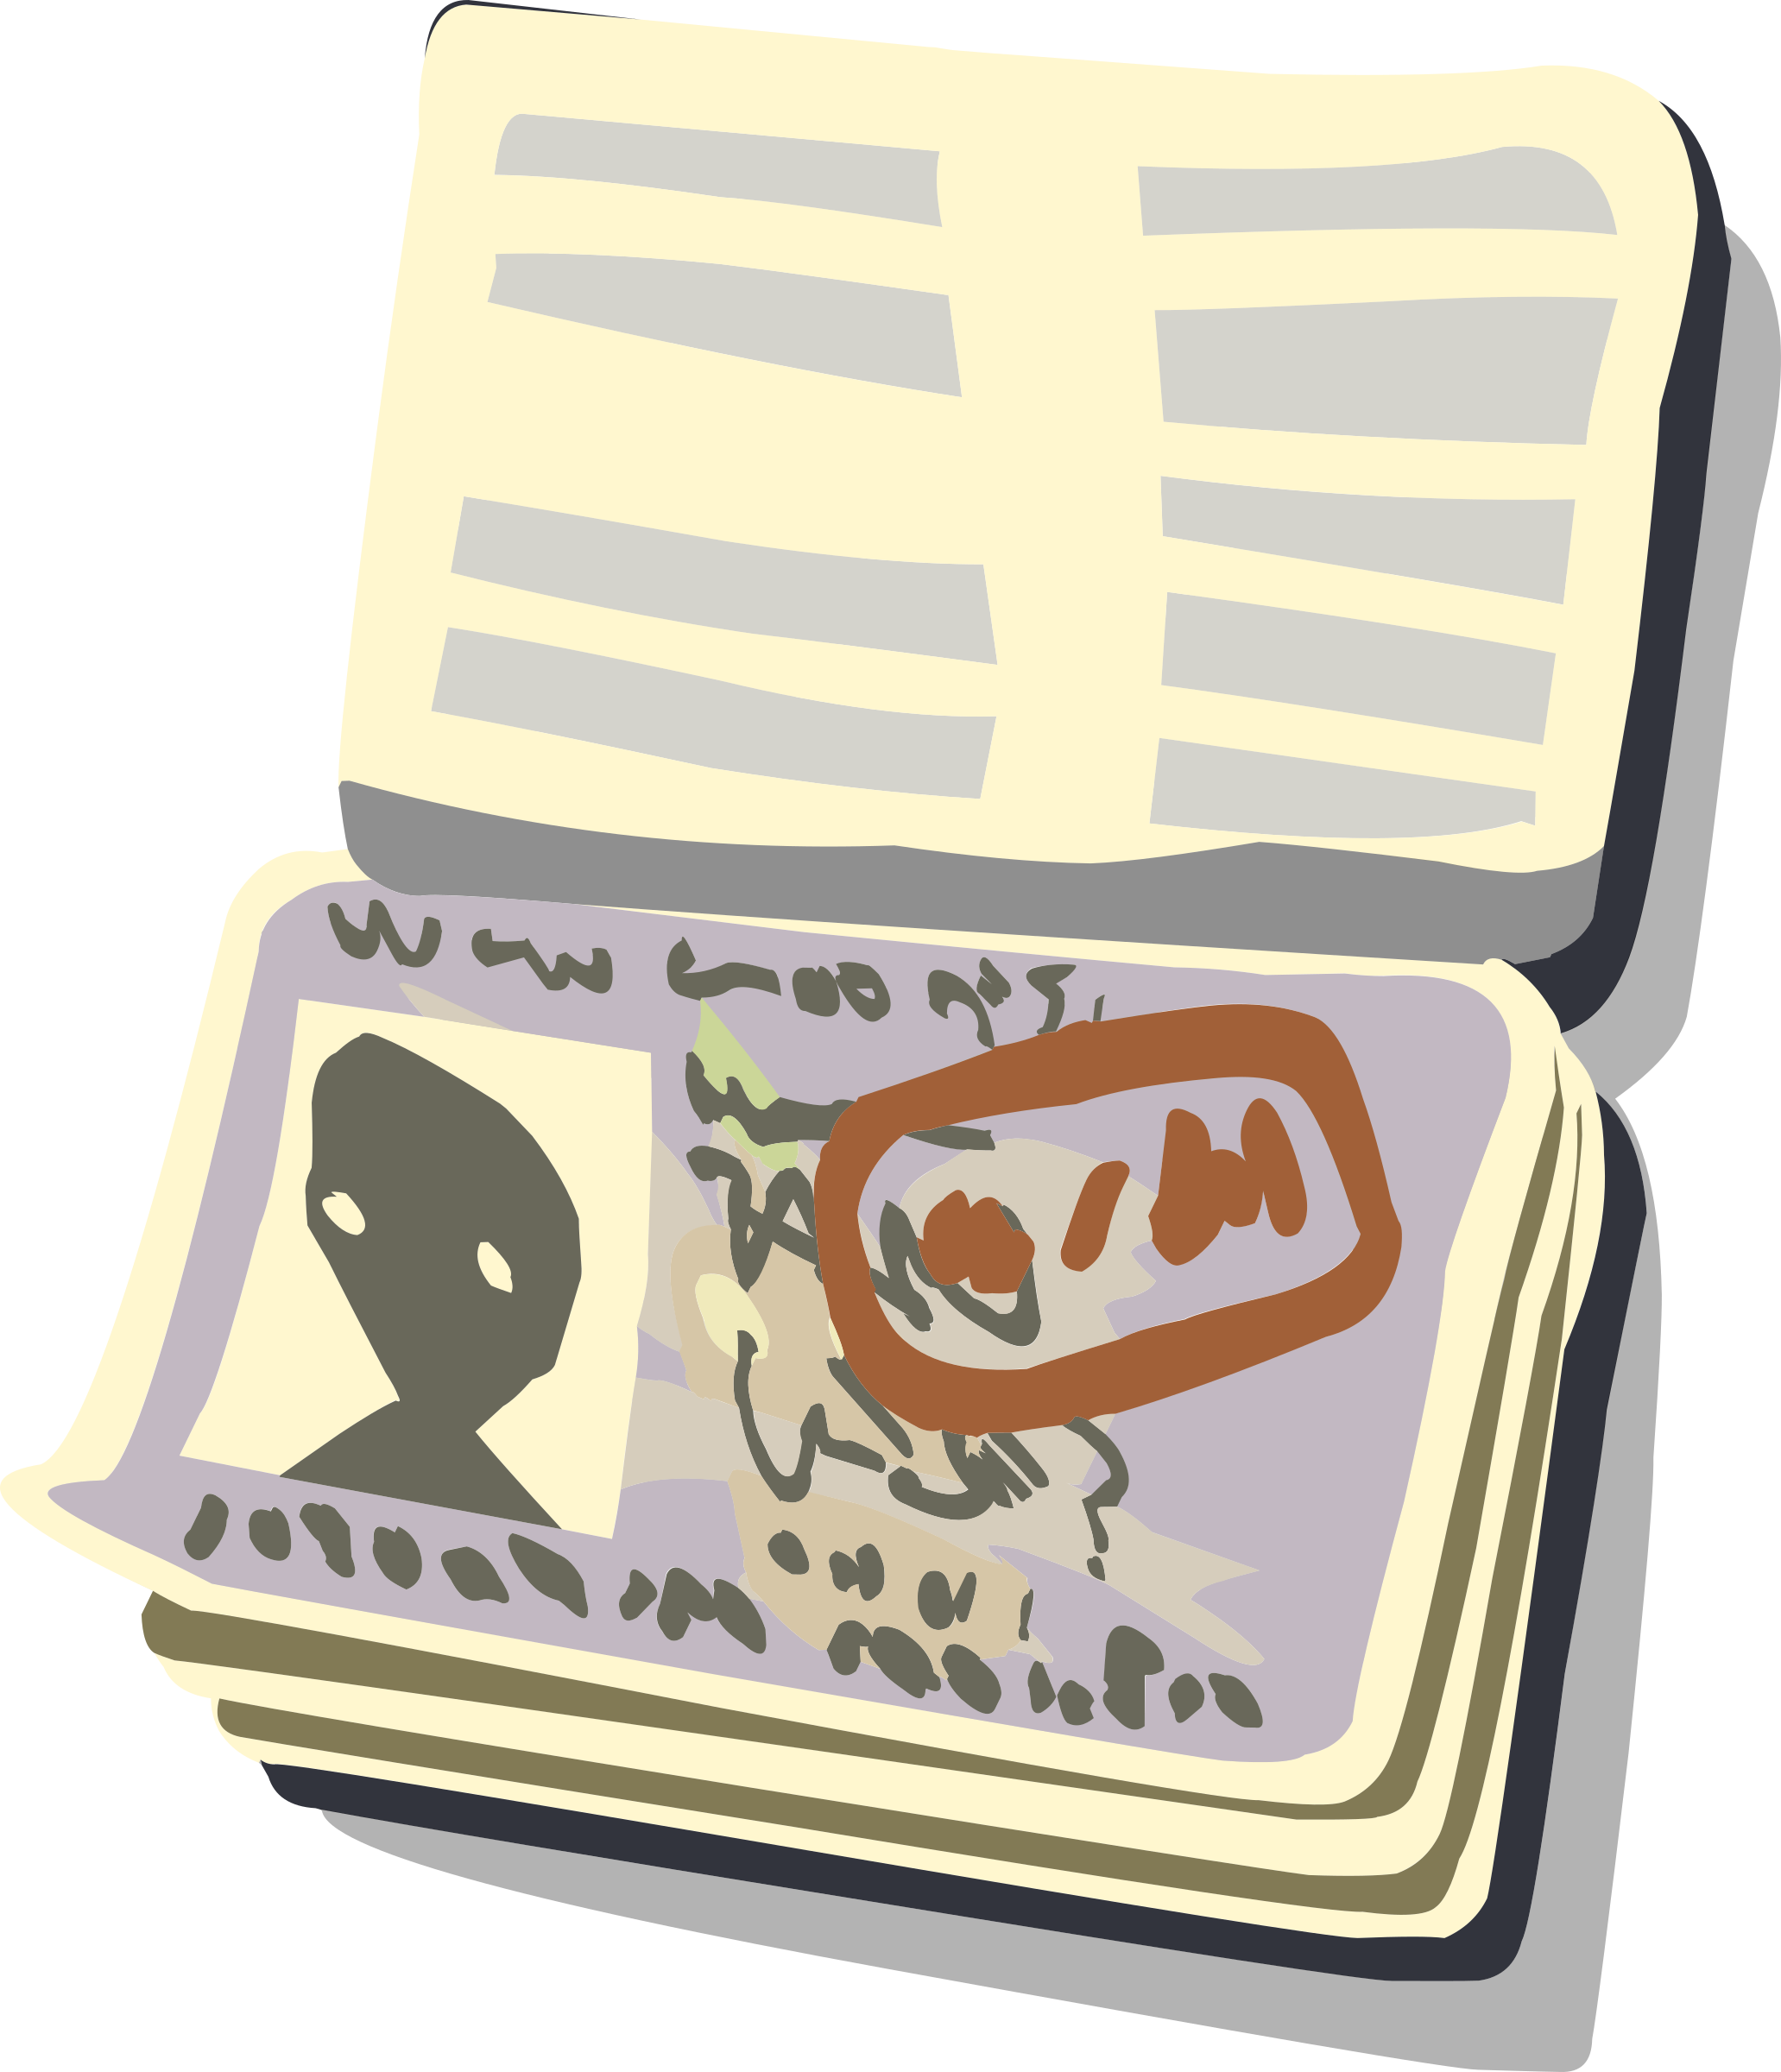 png transparent Passport icons png free. Open wallet clipart.